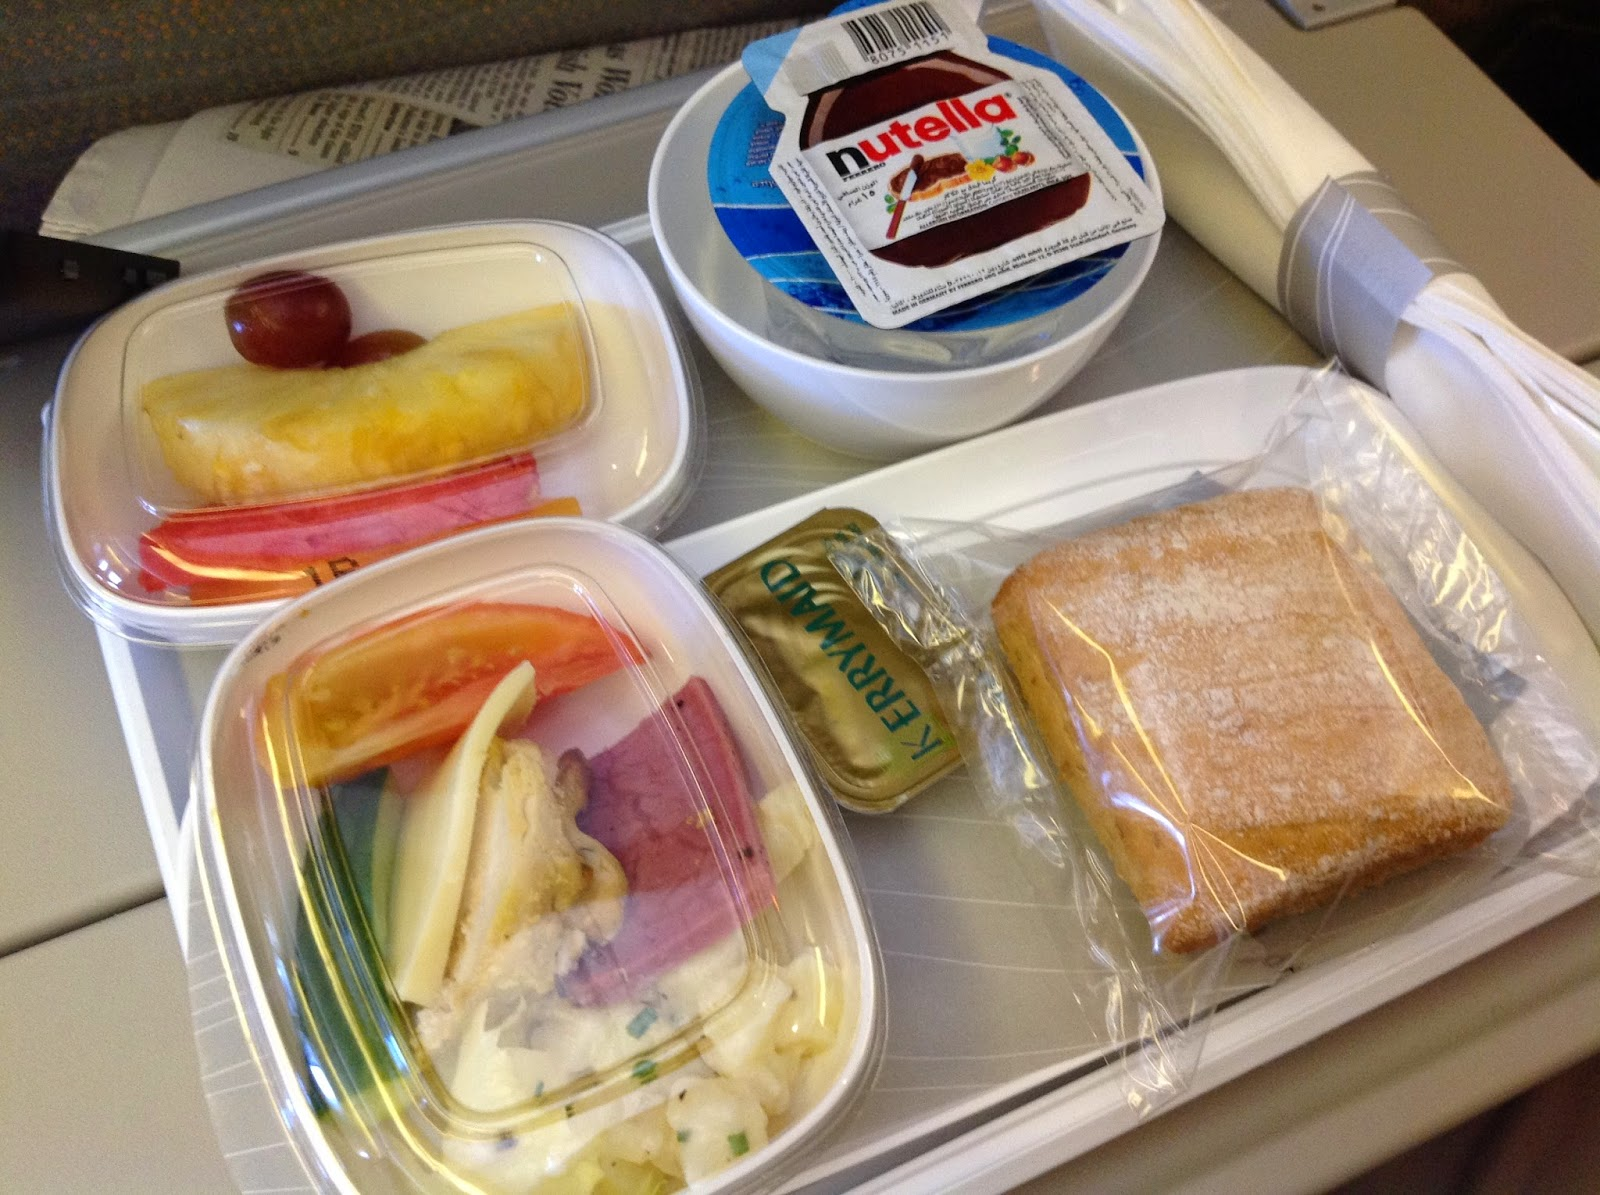 Emirates-EK059-in-flight-meal-snack エミレーツの機内食(軽食)